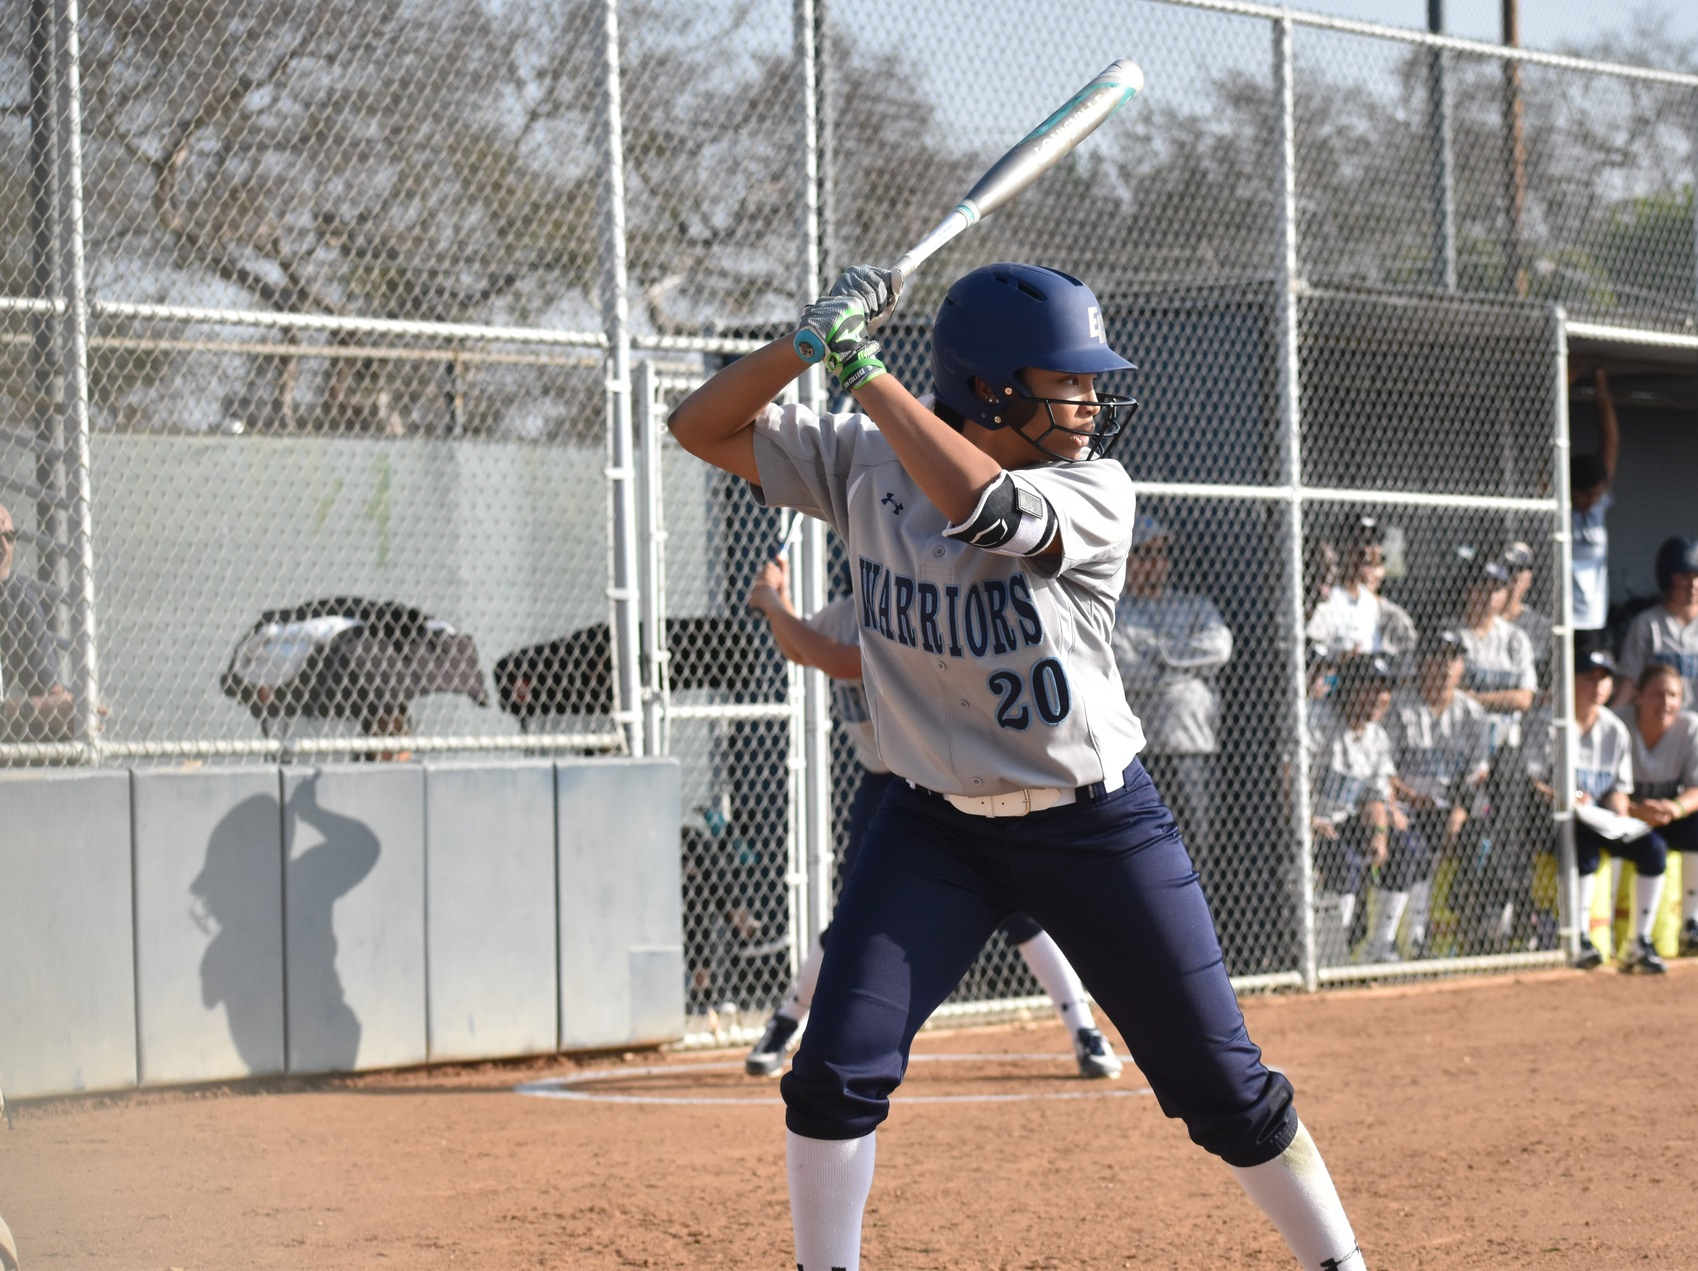 Warriors Shutout against Palomar College